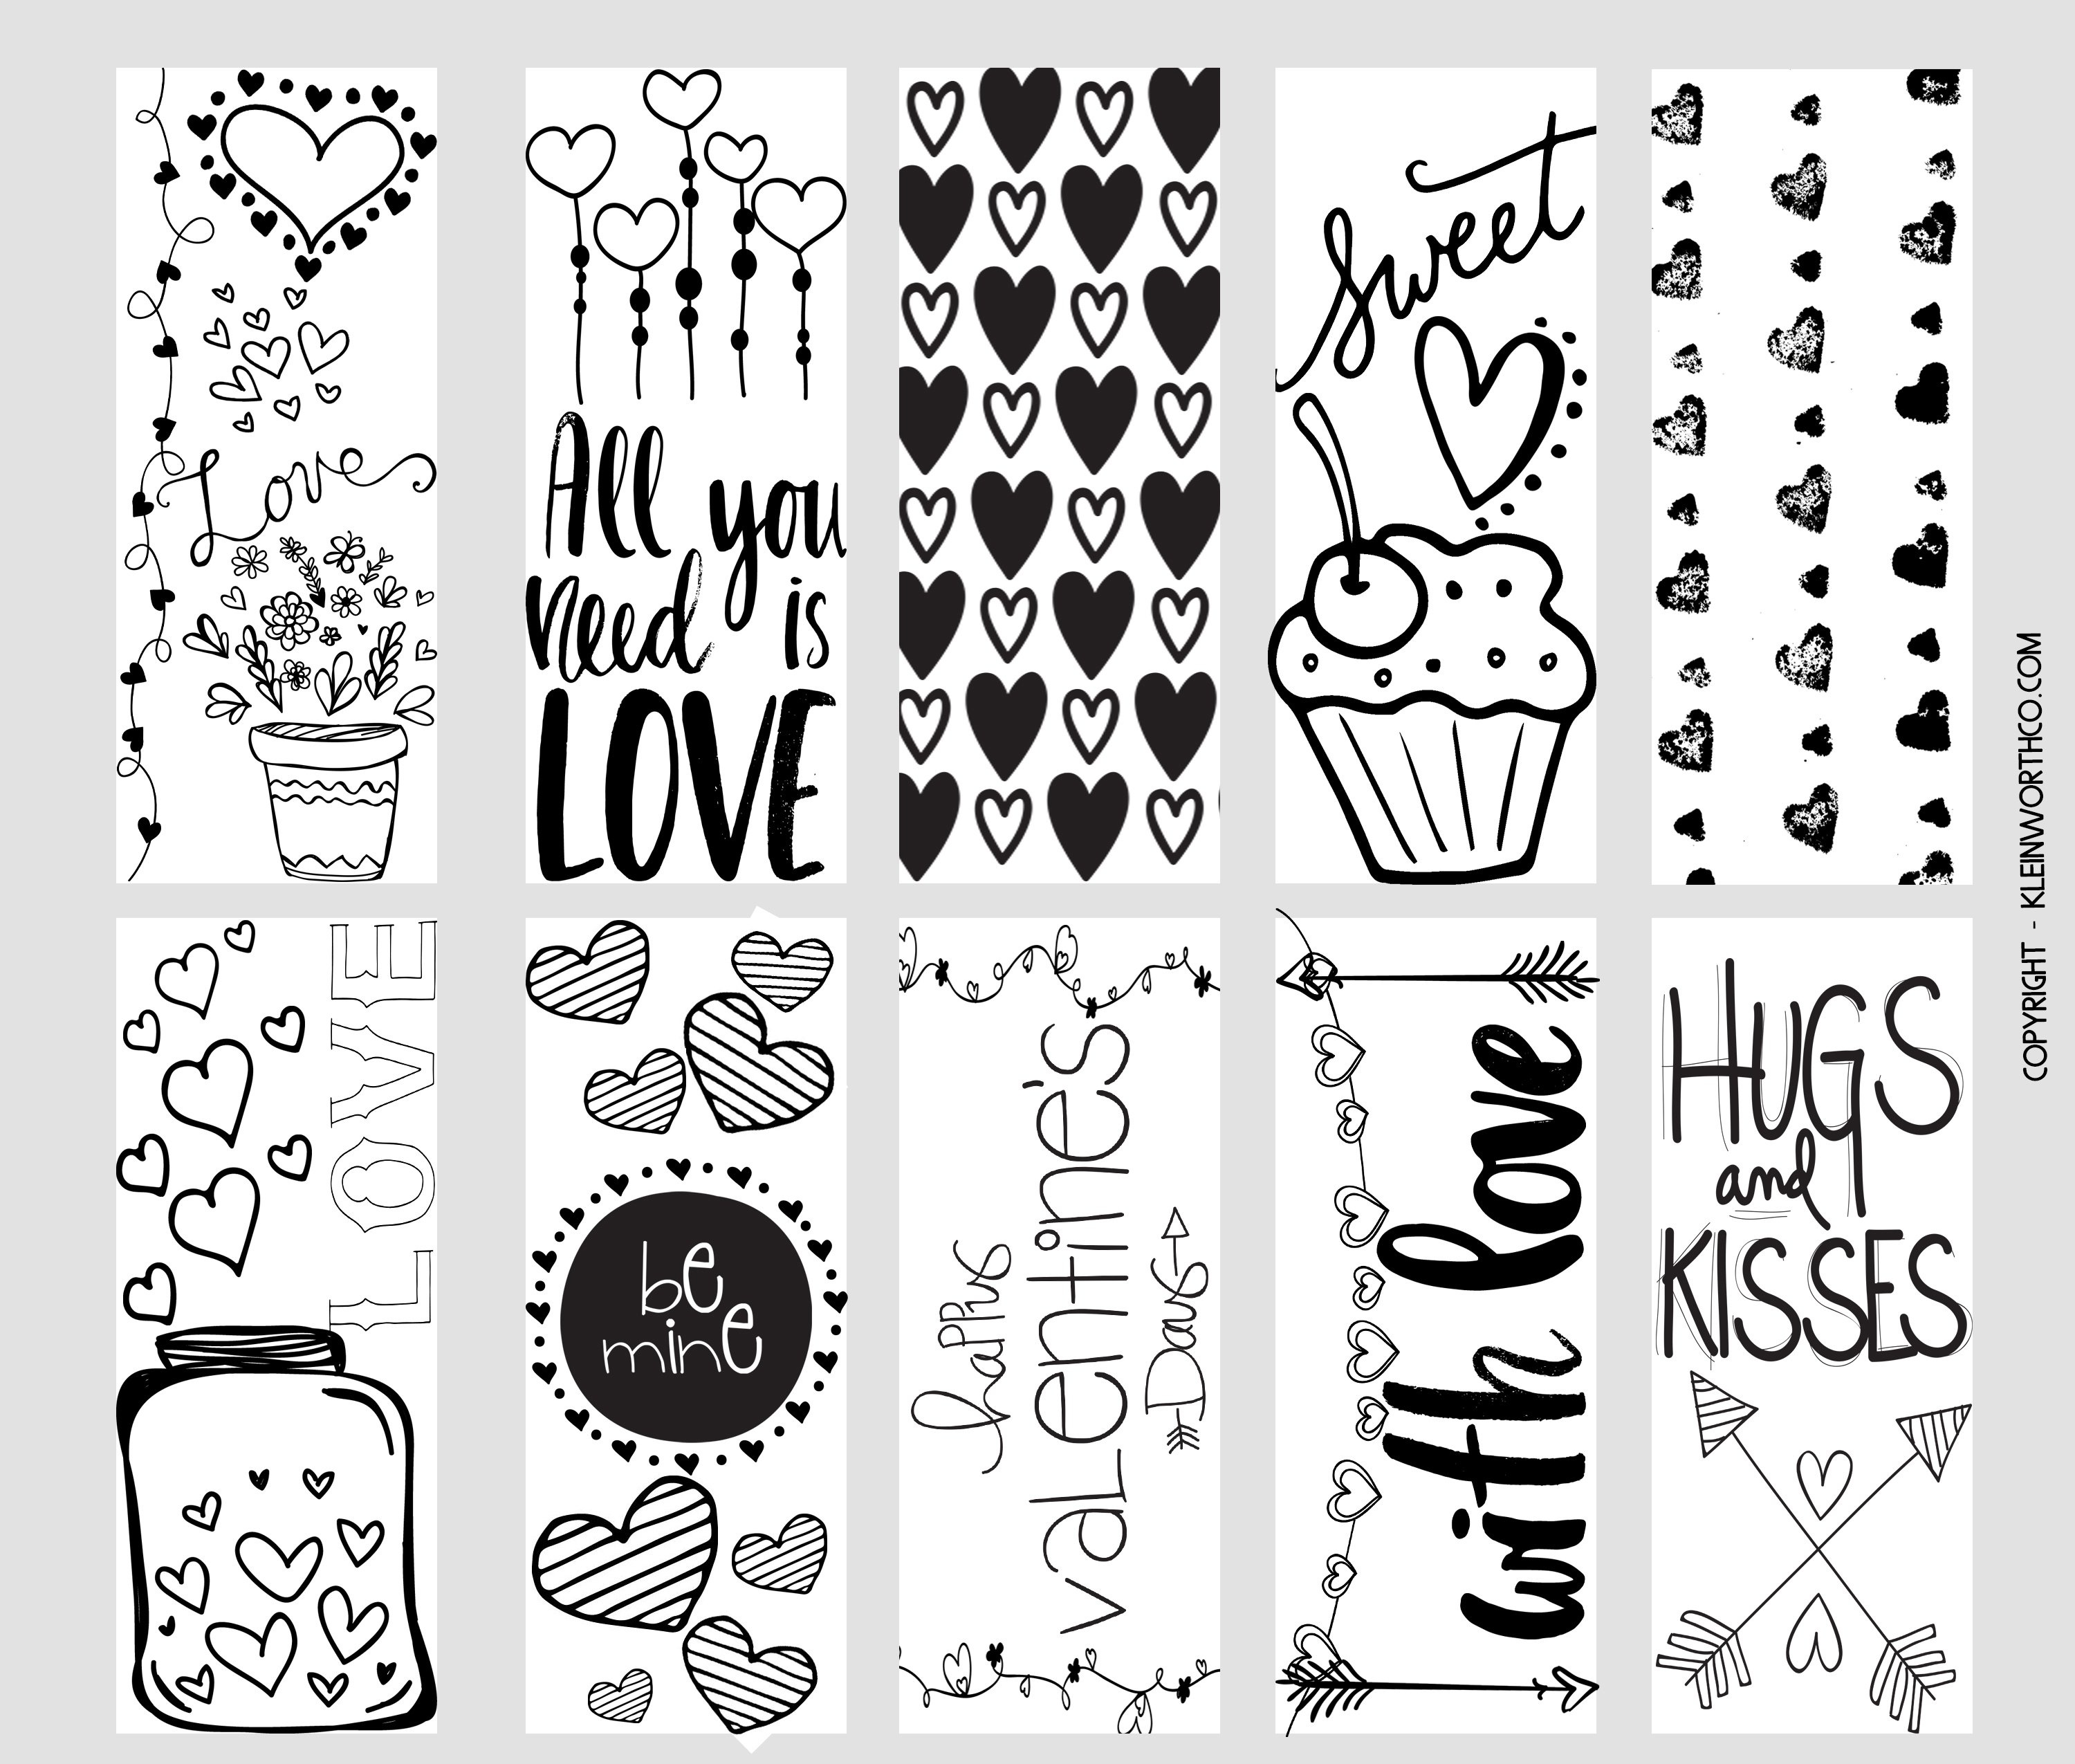 Valentine Printable Coloring Page Bookmarks - Kleinworth & Co - Free Printable Valentine Bookmarks